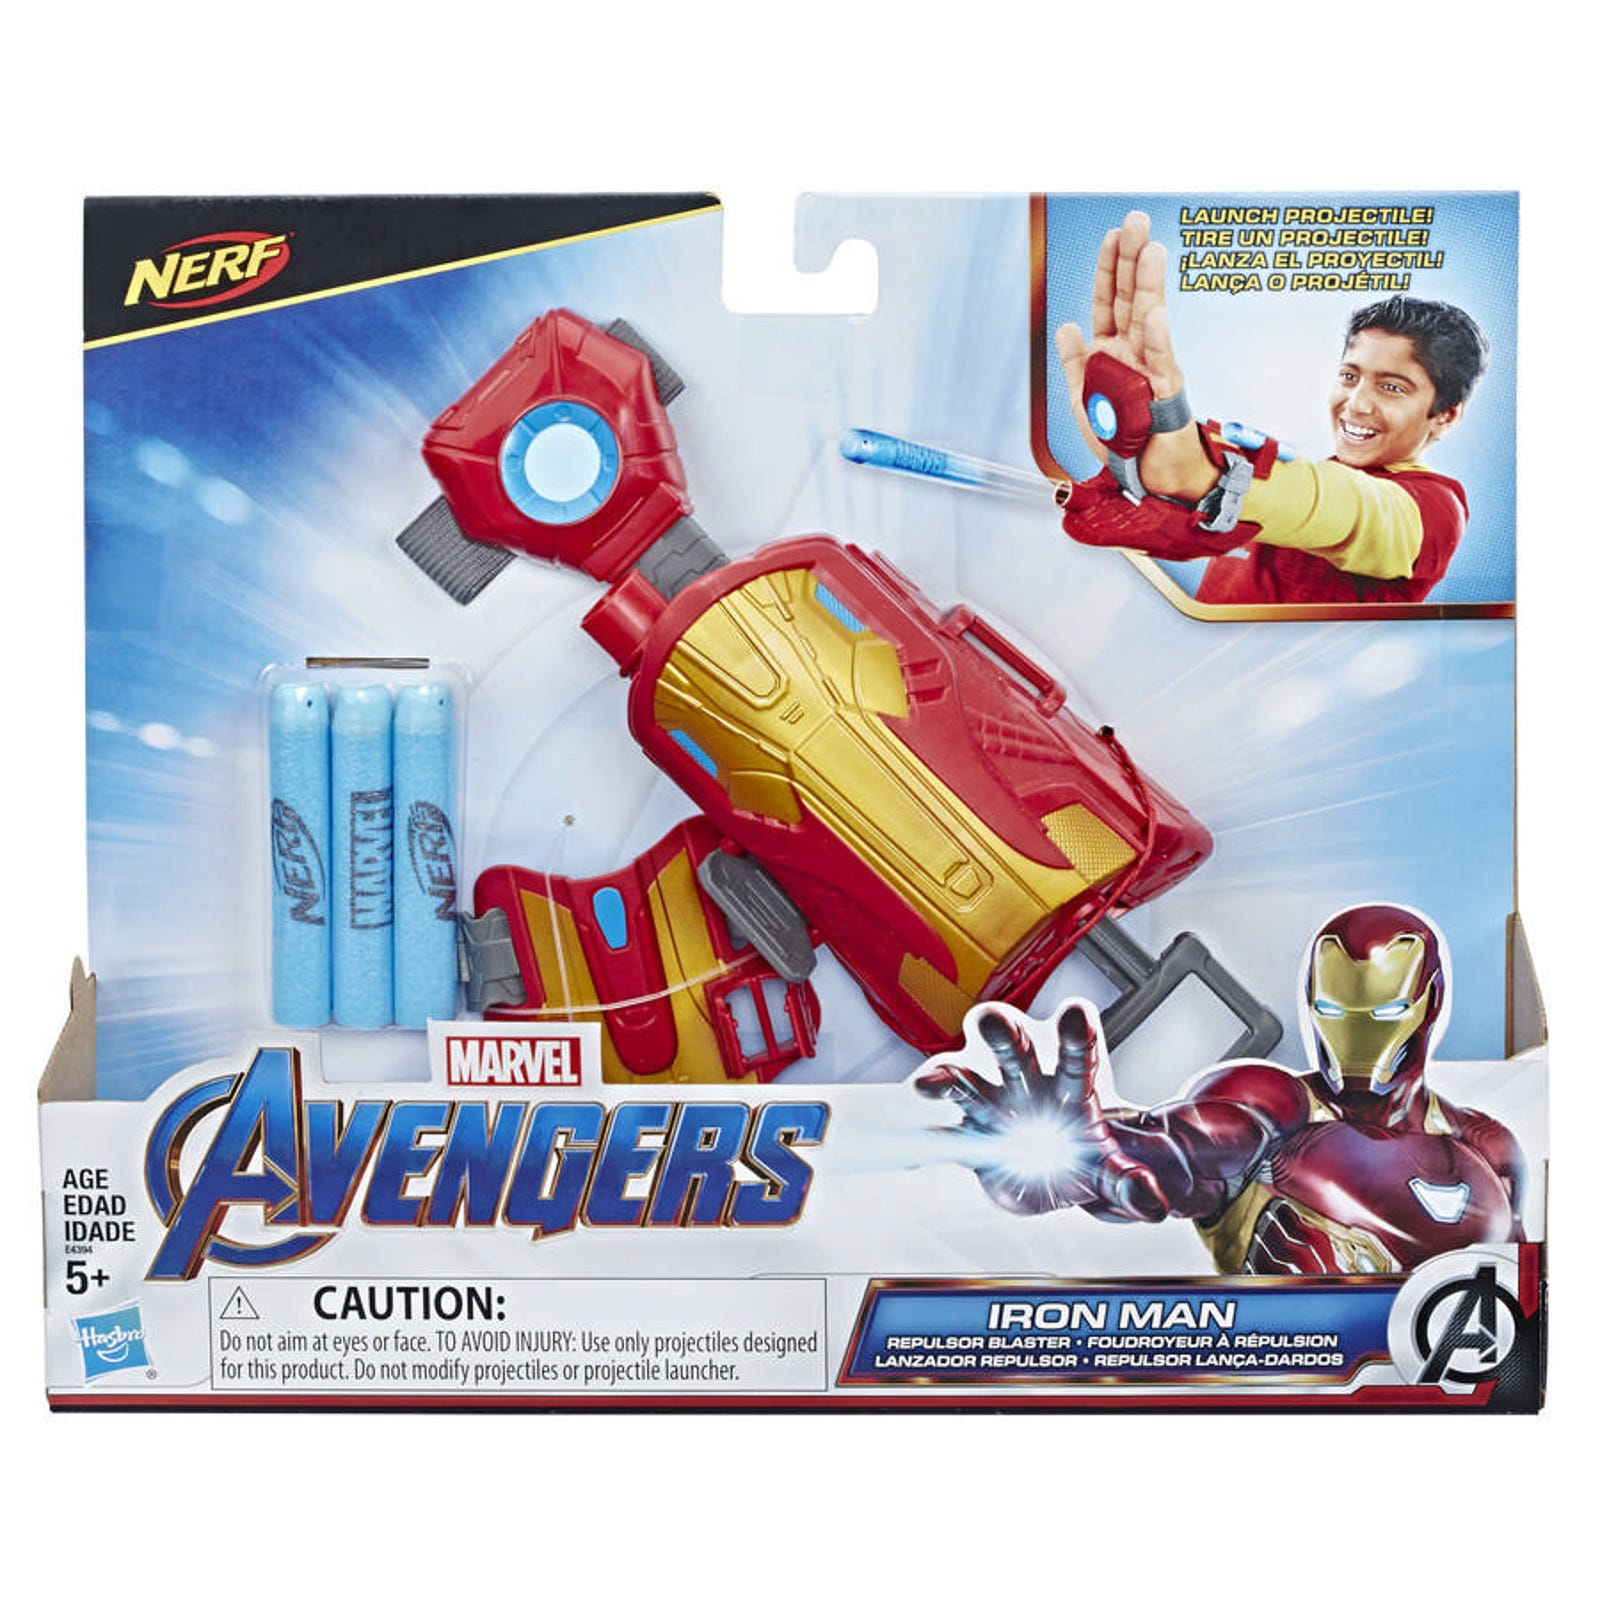 The Nerf integration on Iron Man's blaster here makes way more sense than that wild assembler.